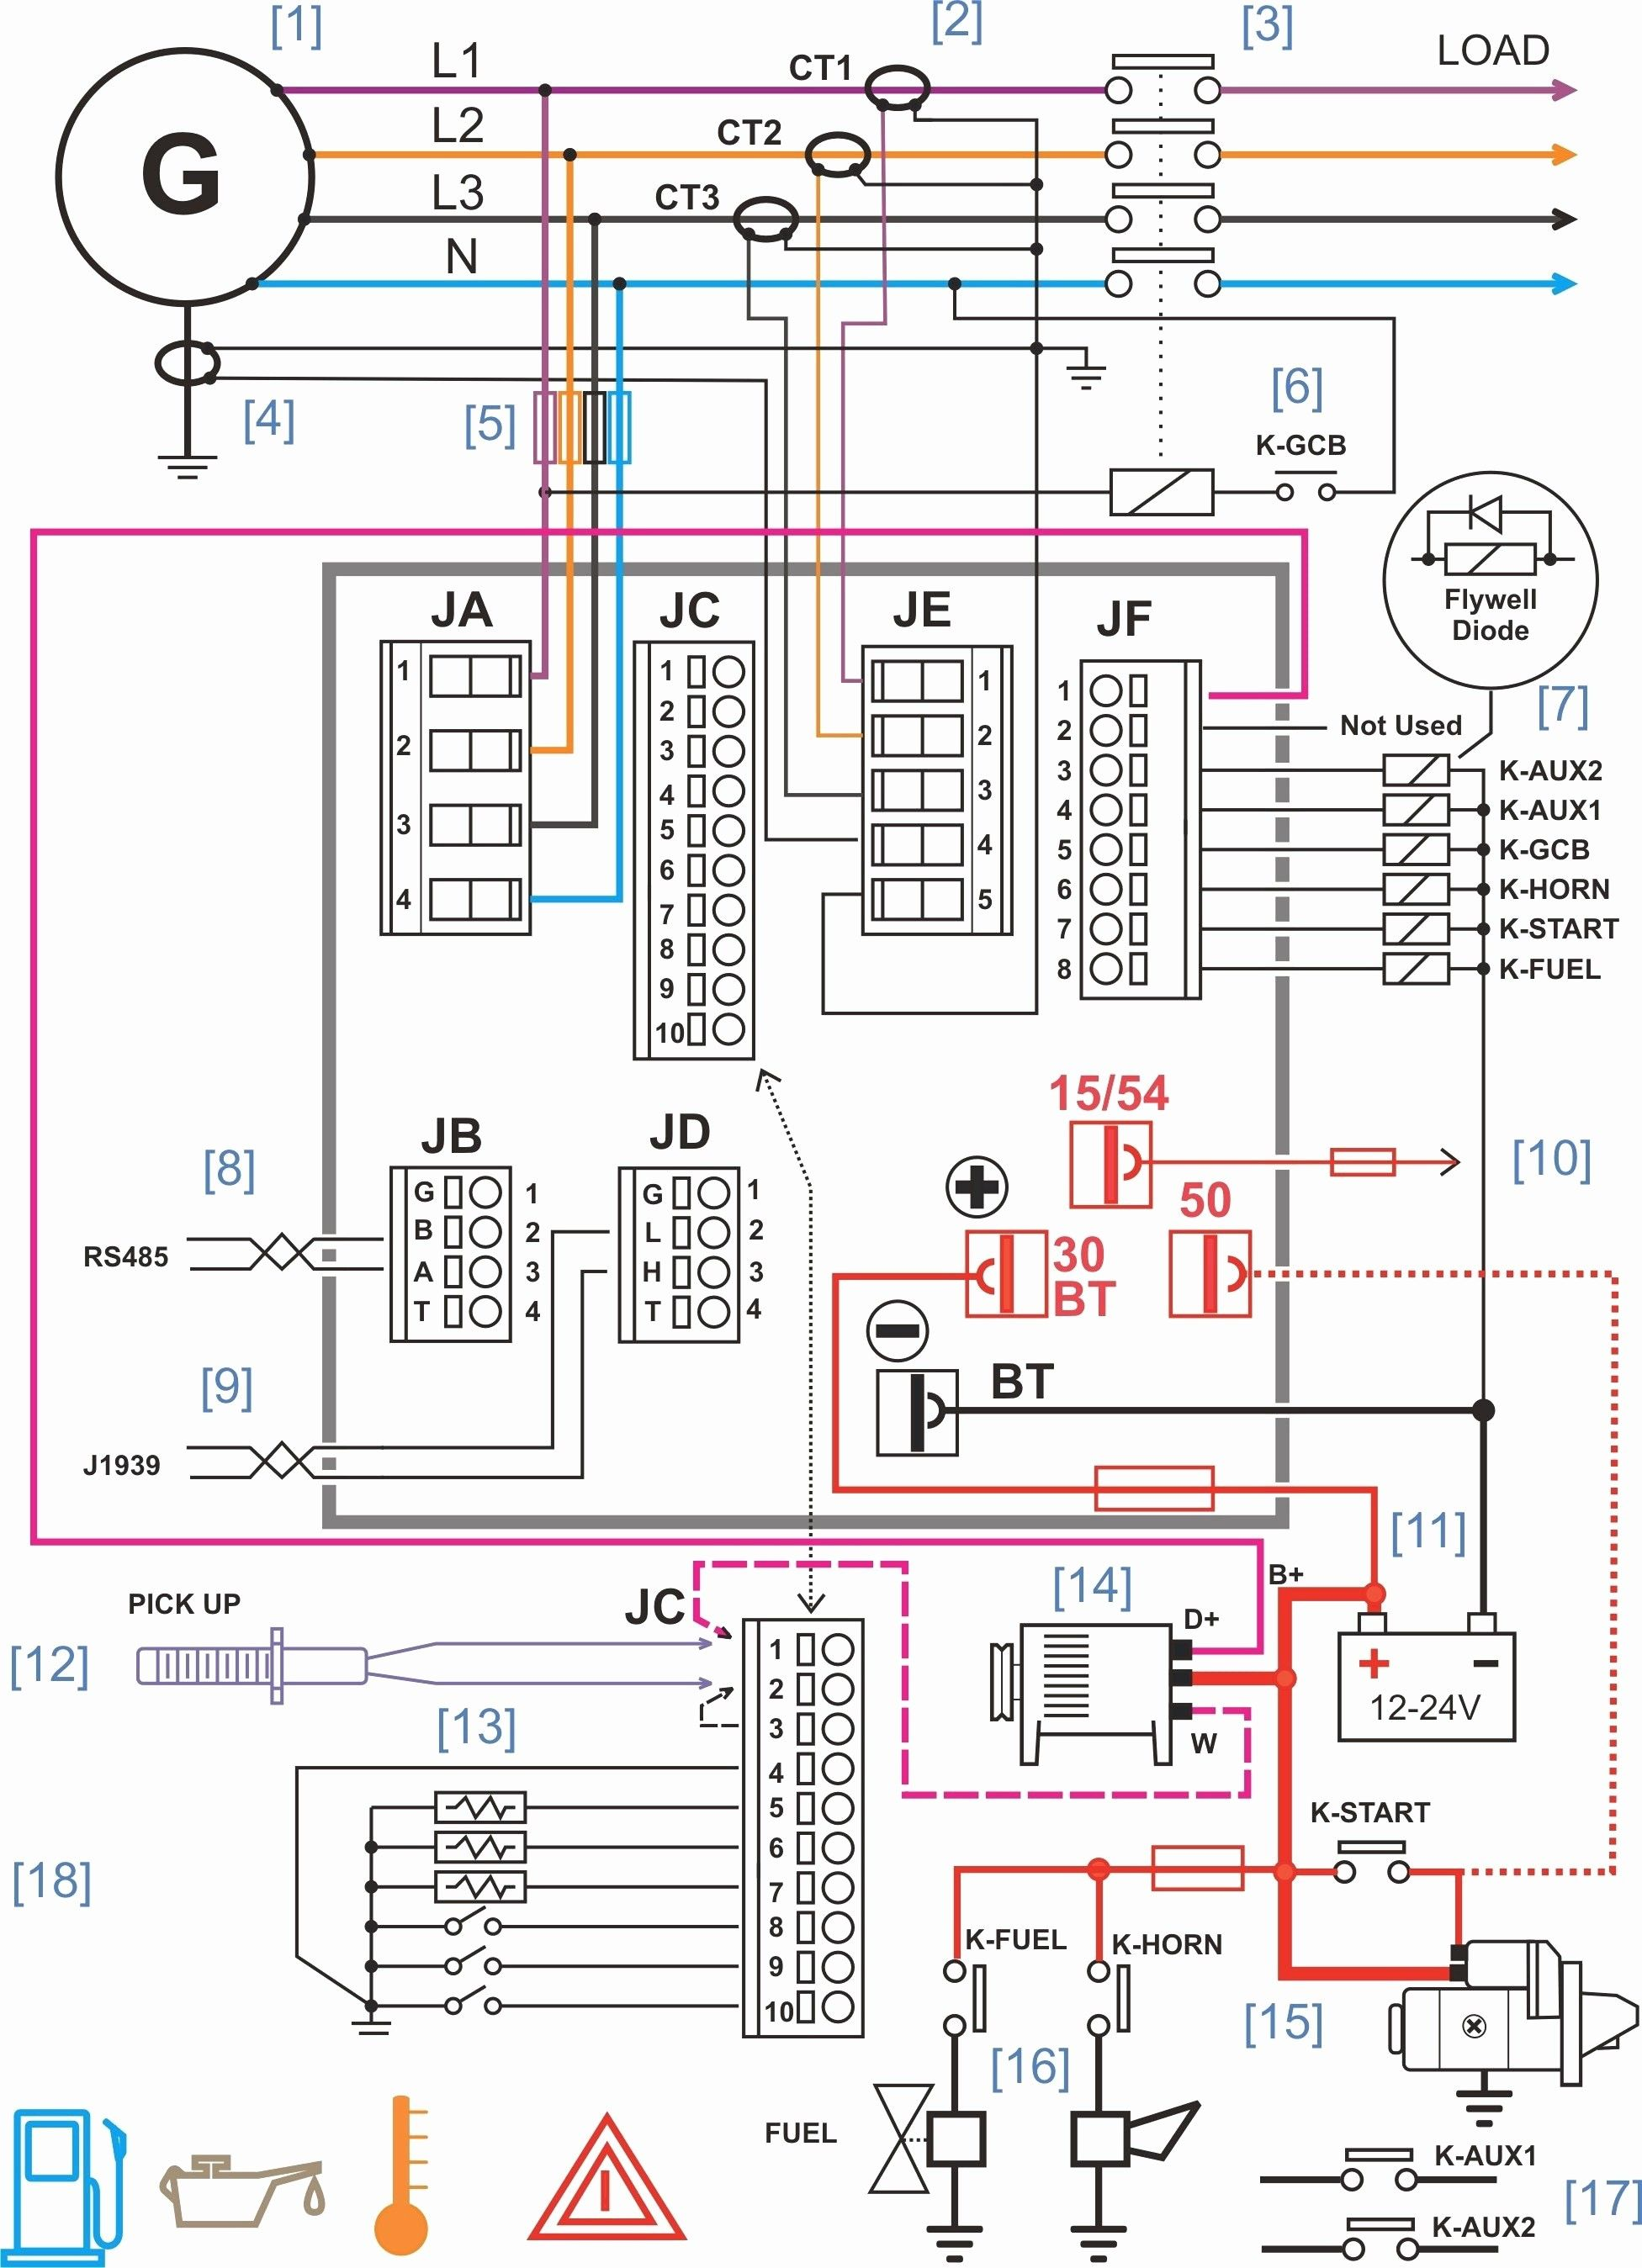 Unique Wiring Diagram Mccb Motorized Schneider Diagrams Digramssample Diagramimages Electrical Circuit Diagram Electrical Diagram Electrical Wiring Diagram